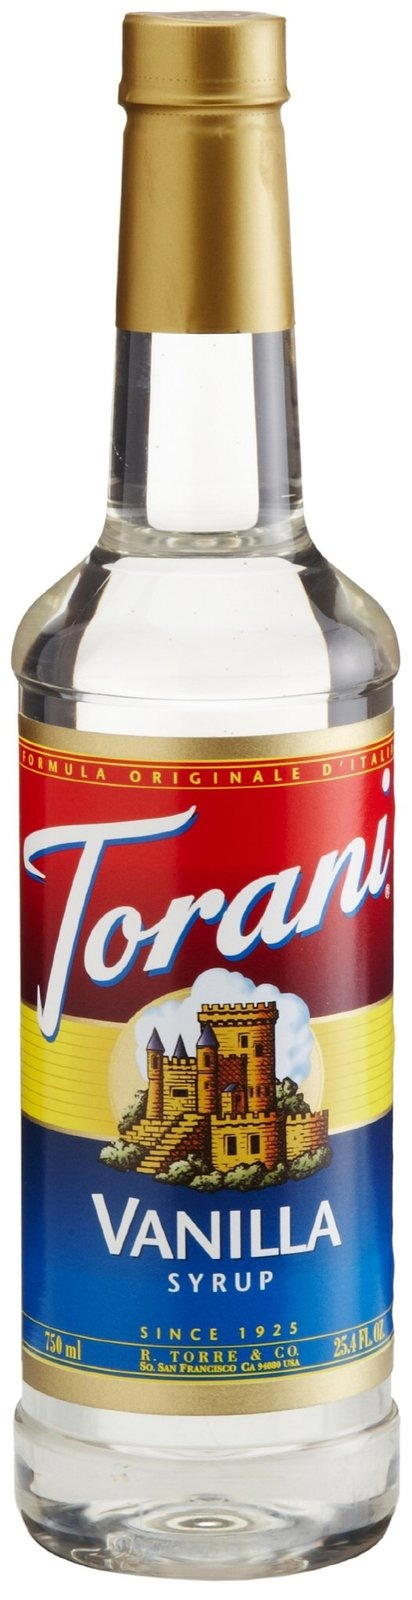 To finish off the base mixture, you can use either simple syrup (which is a mixture of water and sugar- quick and easy to do) or use Torani syrup. I use the vanilla flavor. This will sweeten the mixture a bit so if you want it to be more/less sweet, adjust the amount you use to fit your liking.